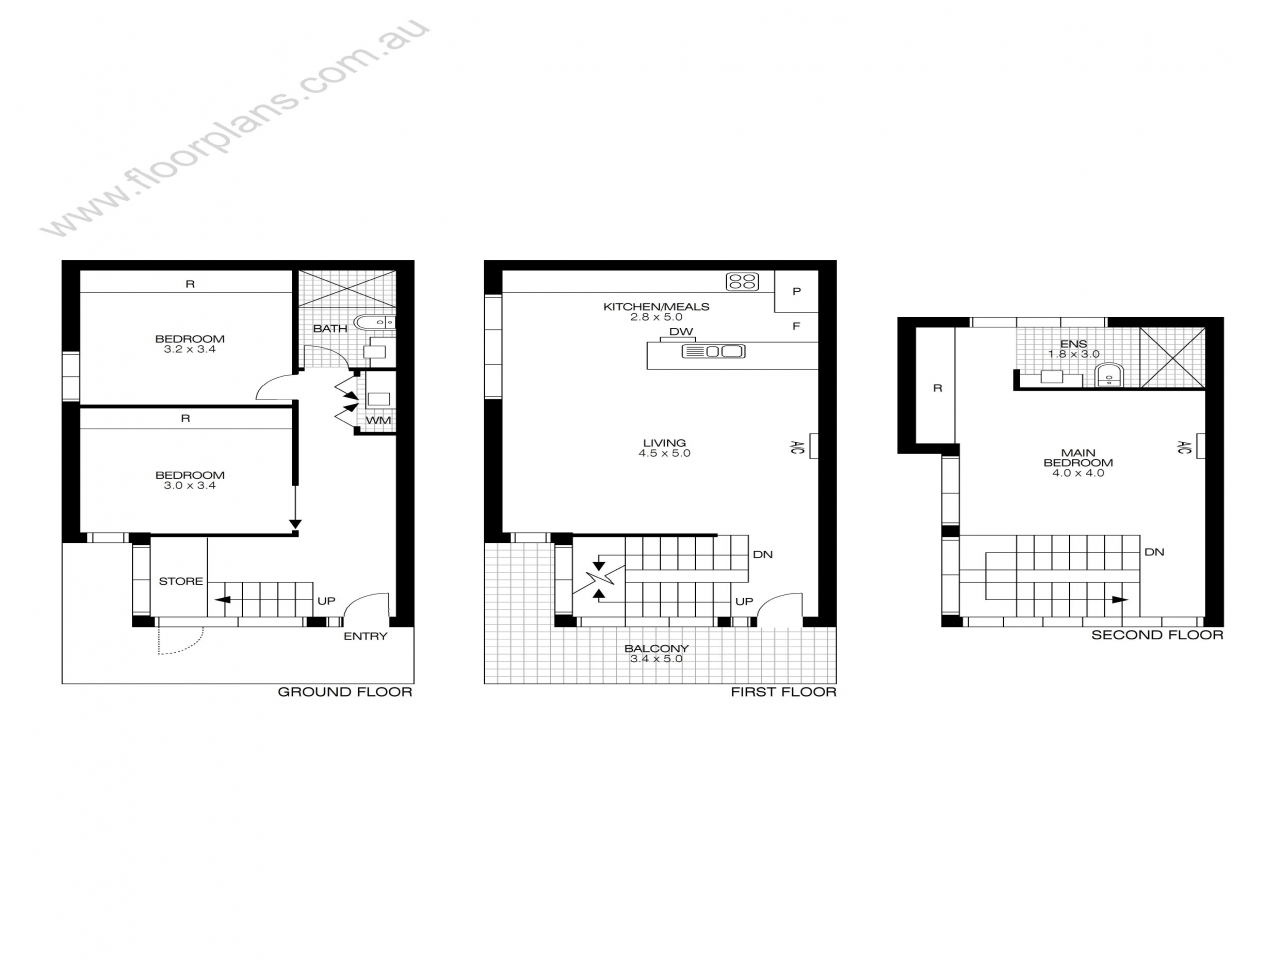 Floor Plans With Dimensions Floorplan Dimensions Floor